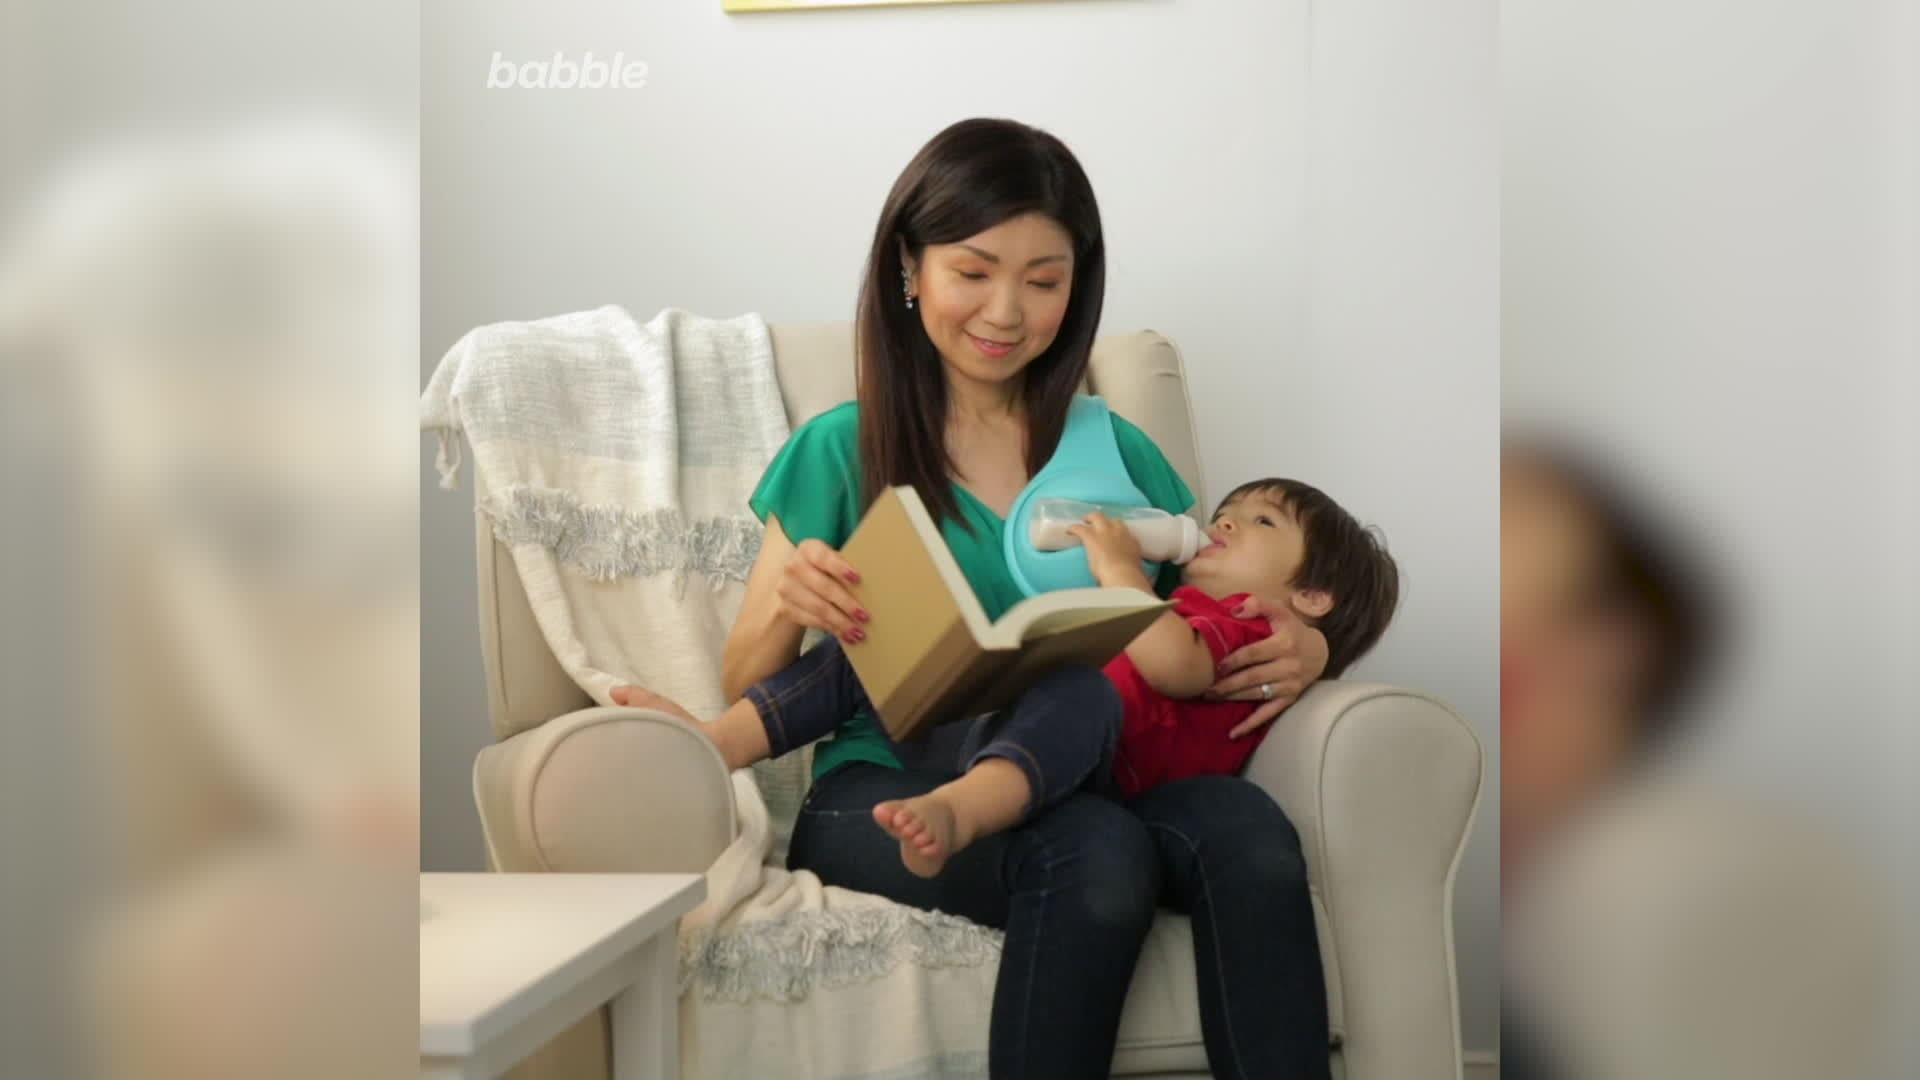 This Free-Hand Bottle Holder Is Changing the Way Parents Bottle-Feed Their Babies